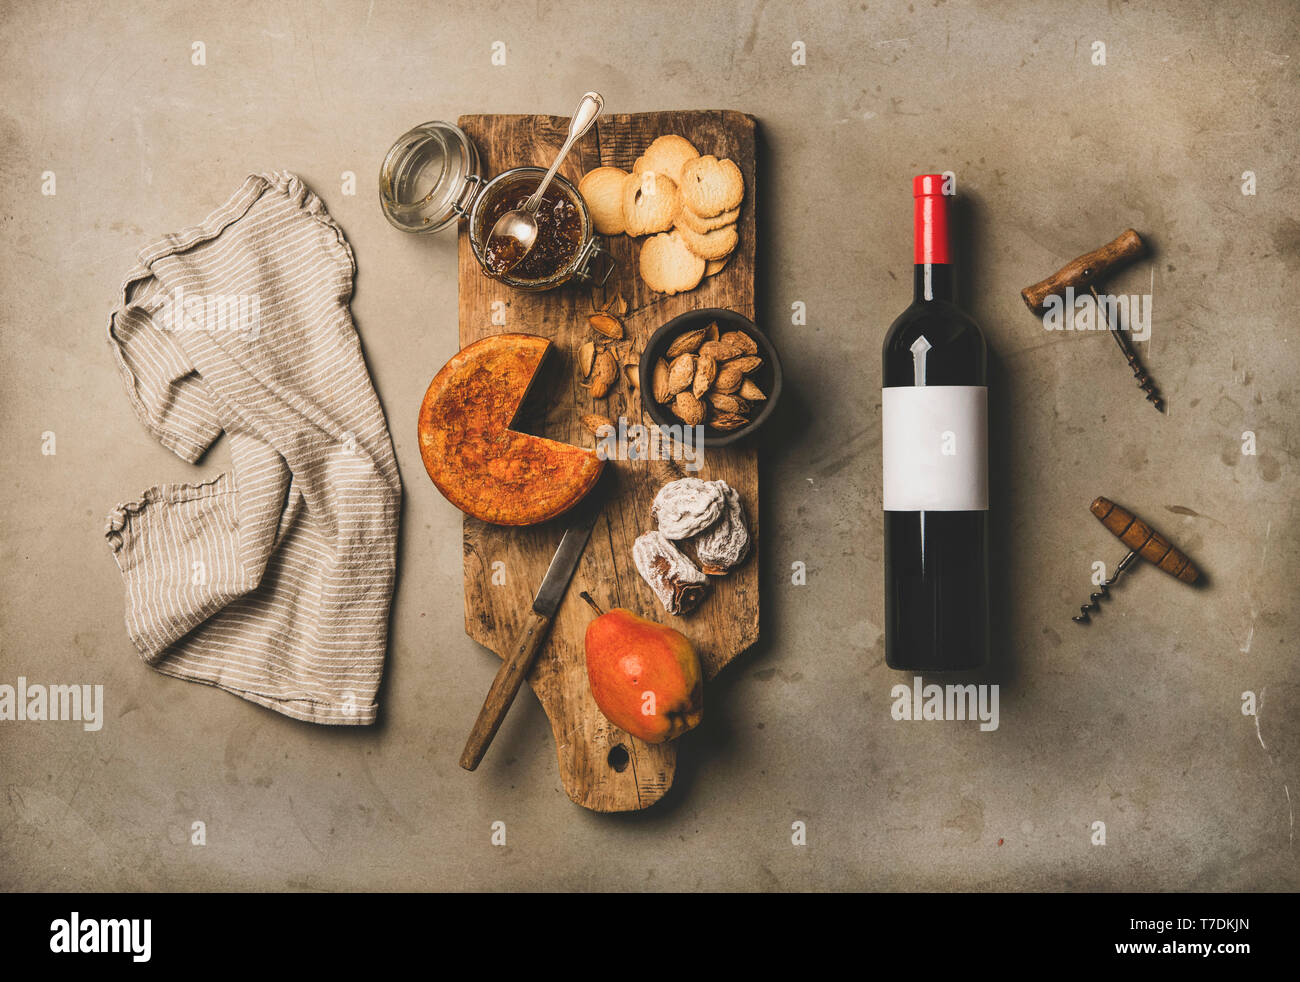 Wine and snack set. Flat-lay of wine bottle with blank label, vintage corkscrews, linen towel and cheese and appetizers board over concrete background - Stock Image